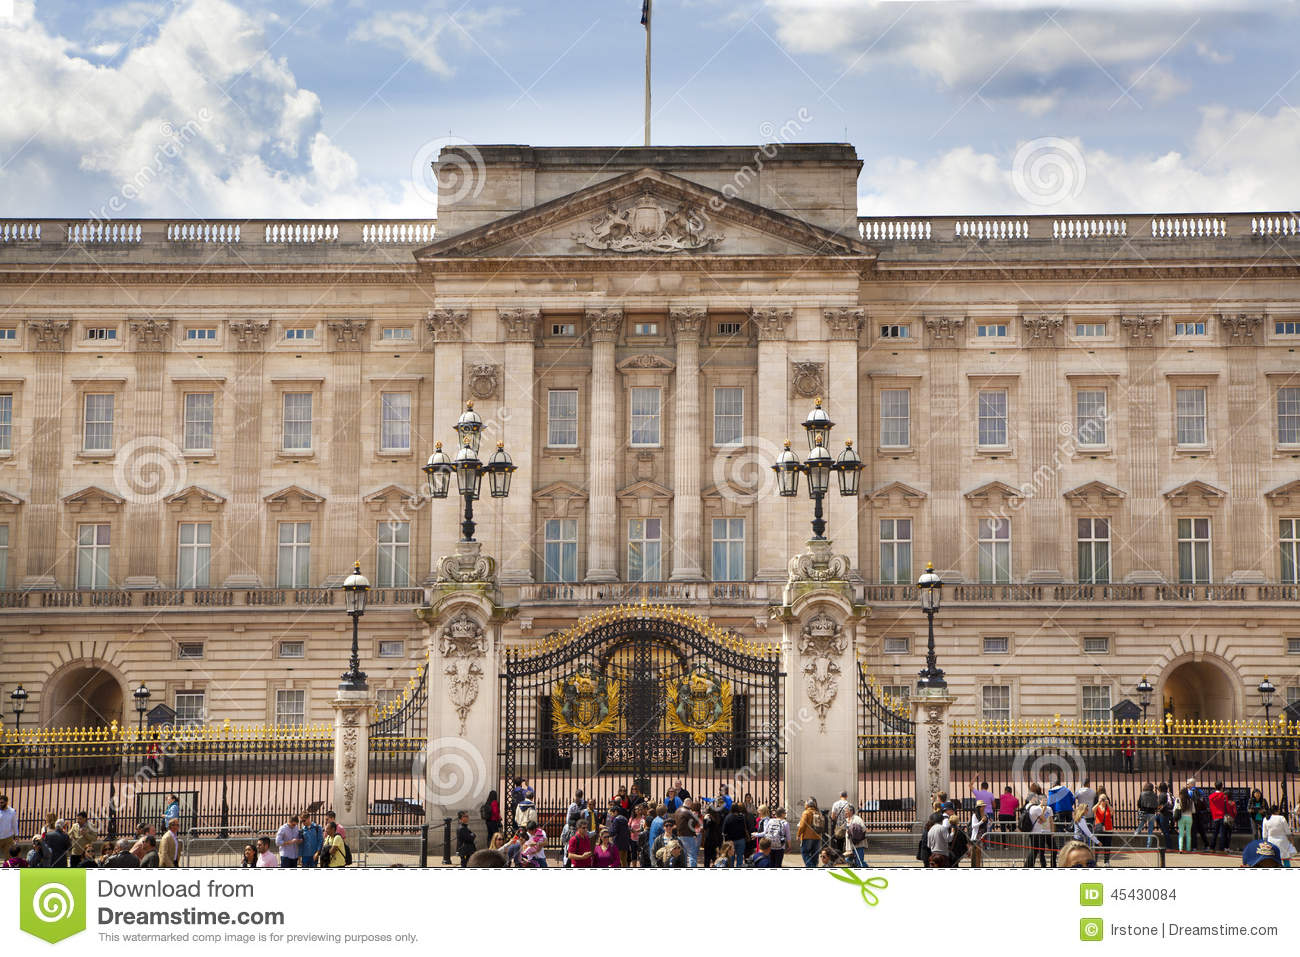 Editorial Stock Image Buckingham Palace Official Residence Queen Elizabeth Ii One Major Tourist Destination London Uk May Destinations Image45430084 on Main Entrance Gate Design For Home